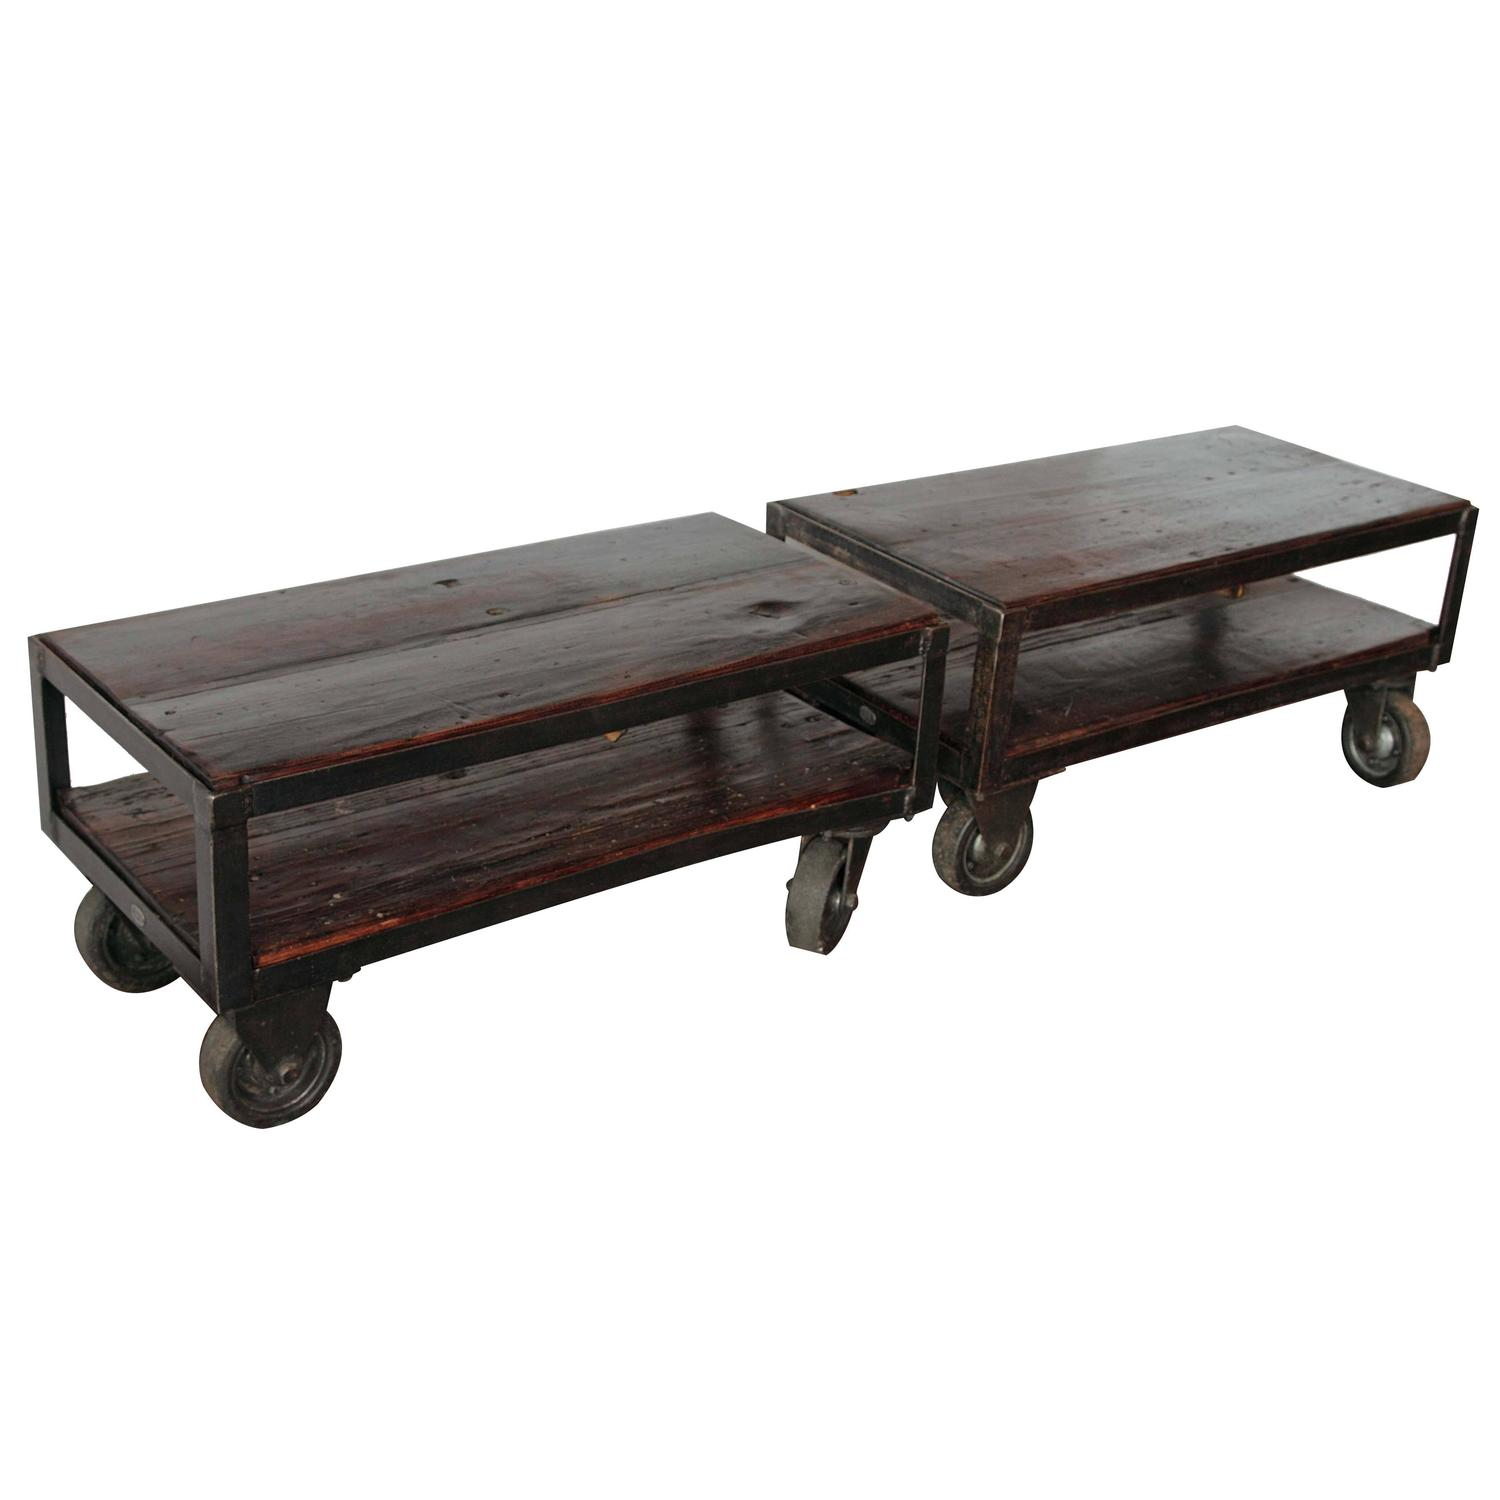 Industrial Coffee Table On Wheels At 1stdibs: Industrial French Factory Cart Table, Circa 1940s For Sale